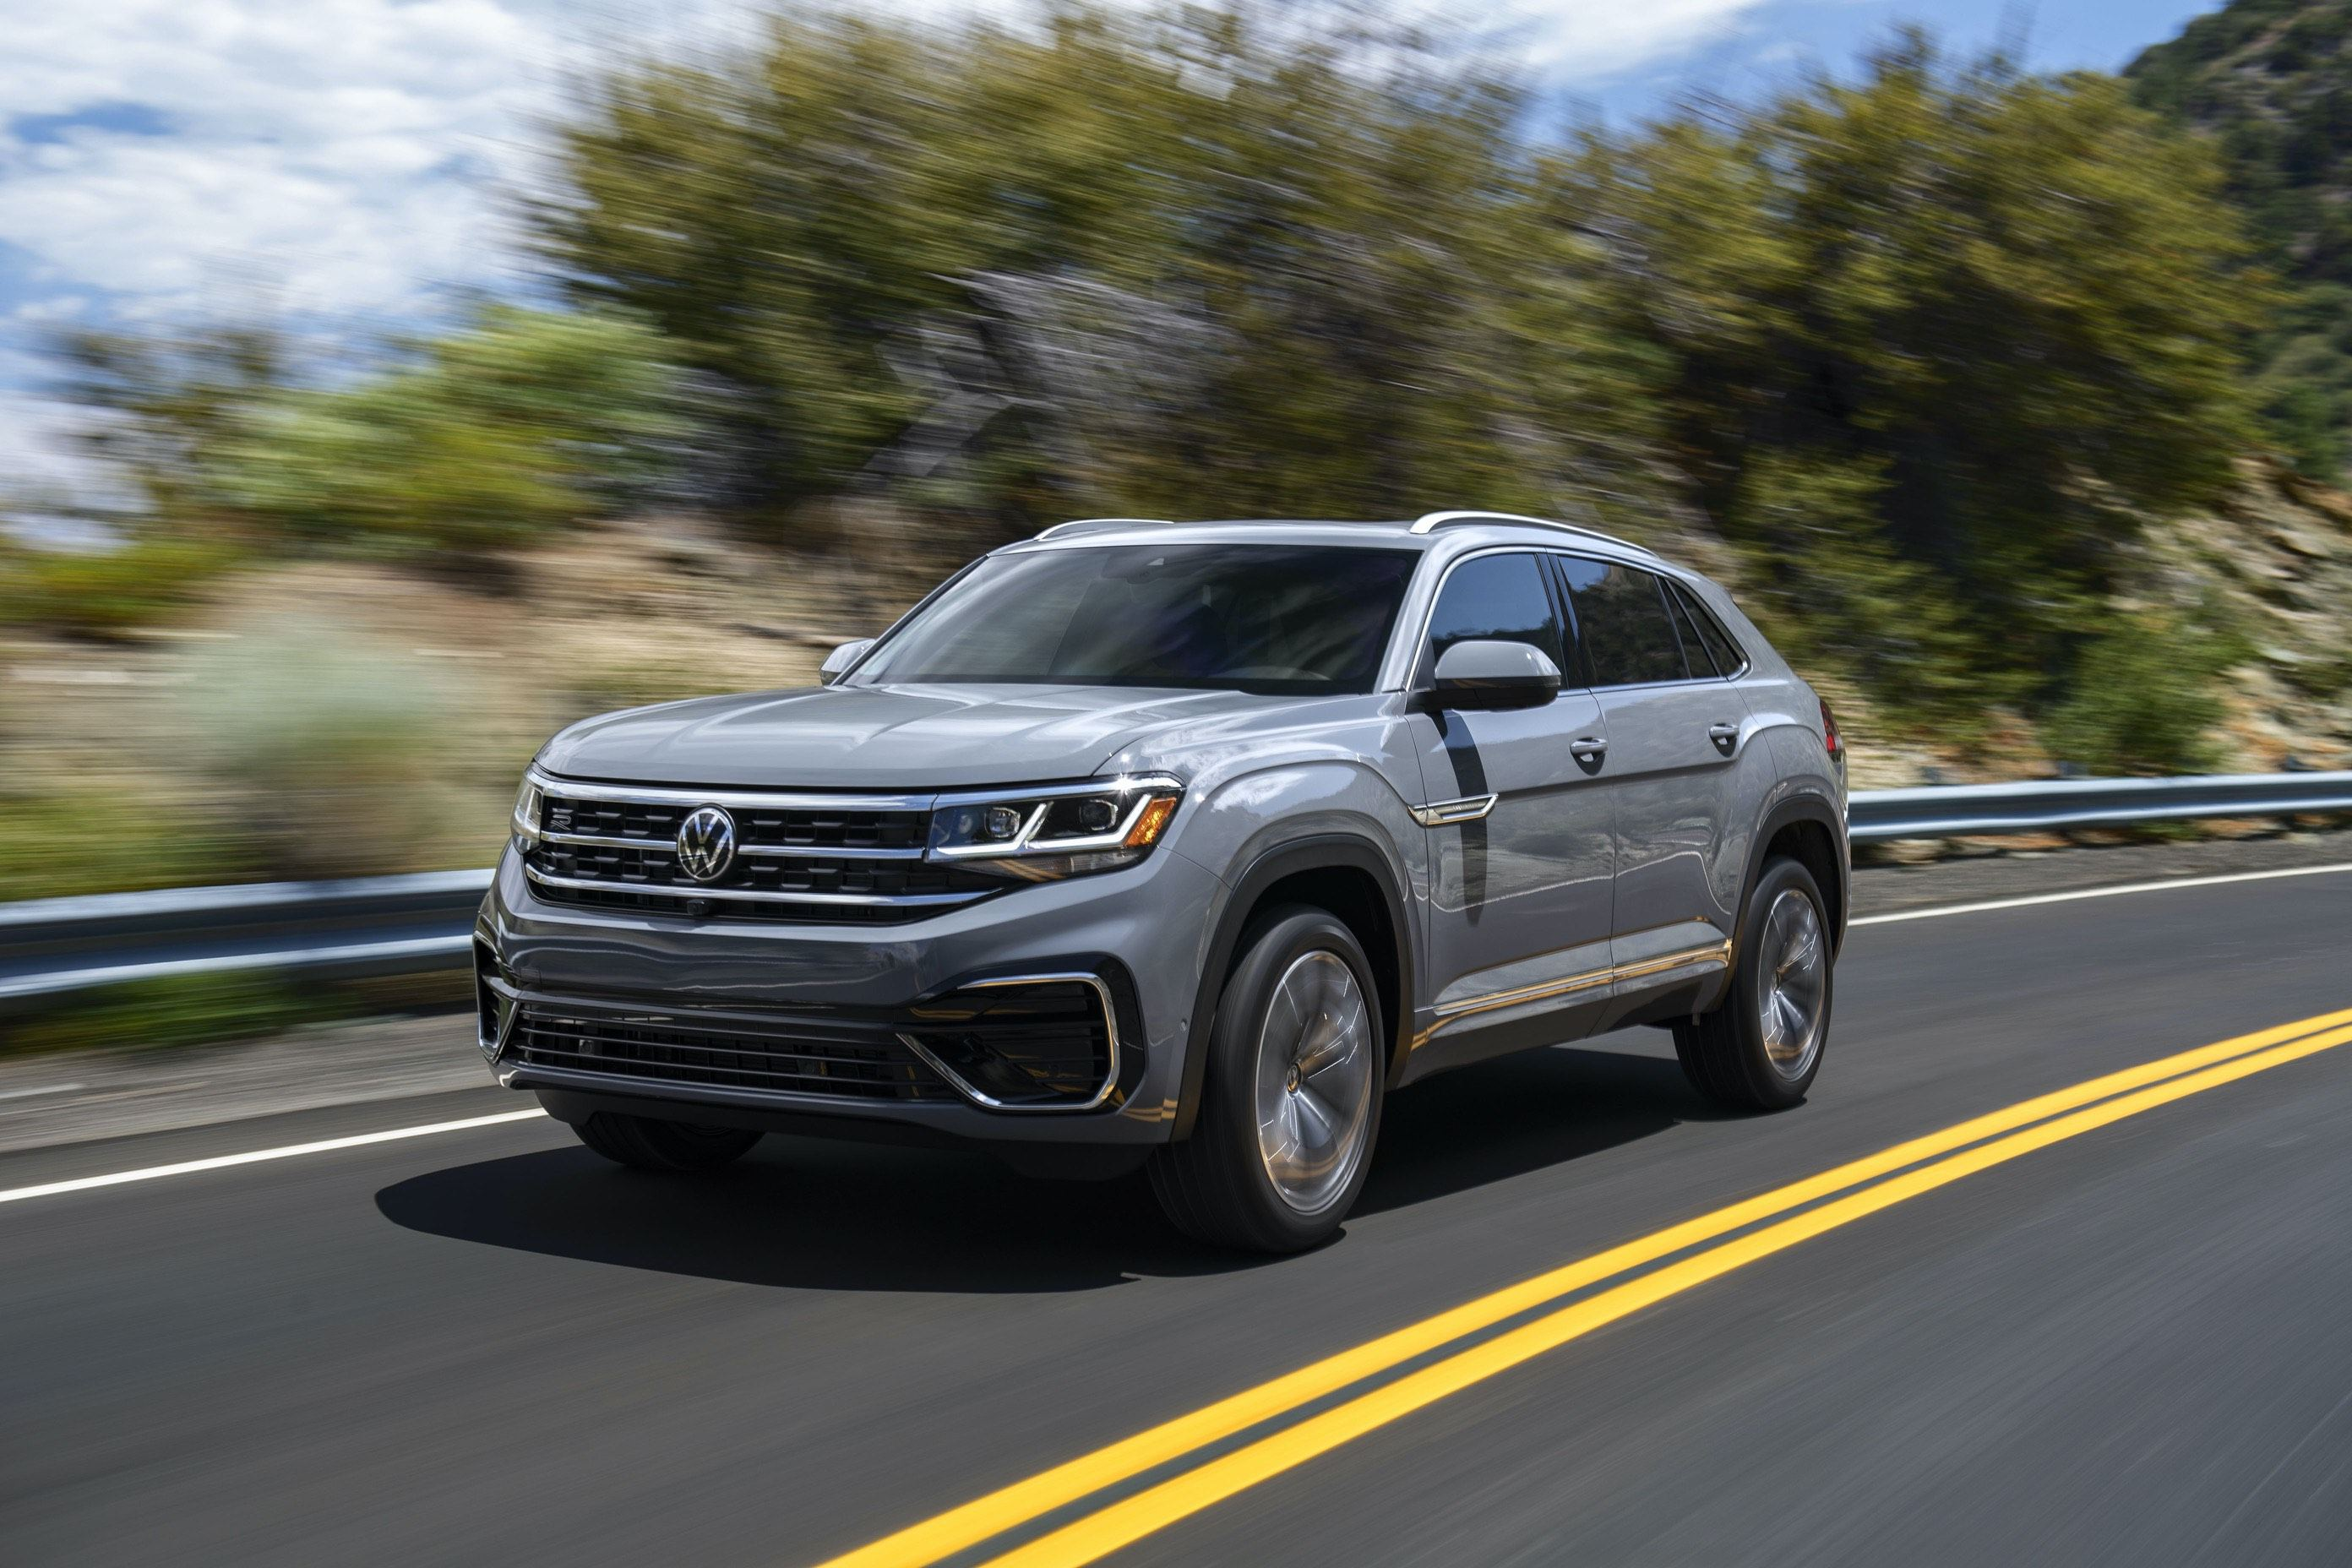 2020 Volkswagen Atlas Cross Sport winding road